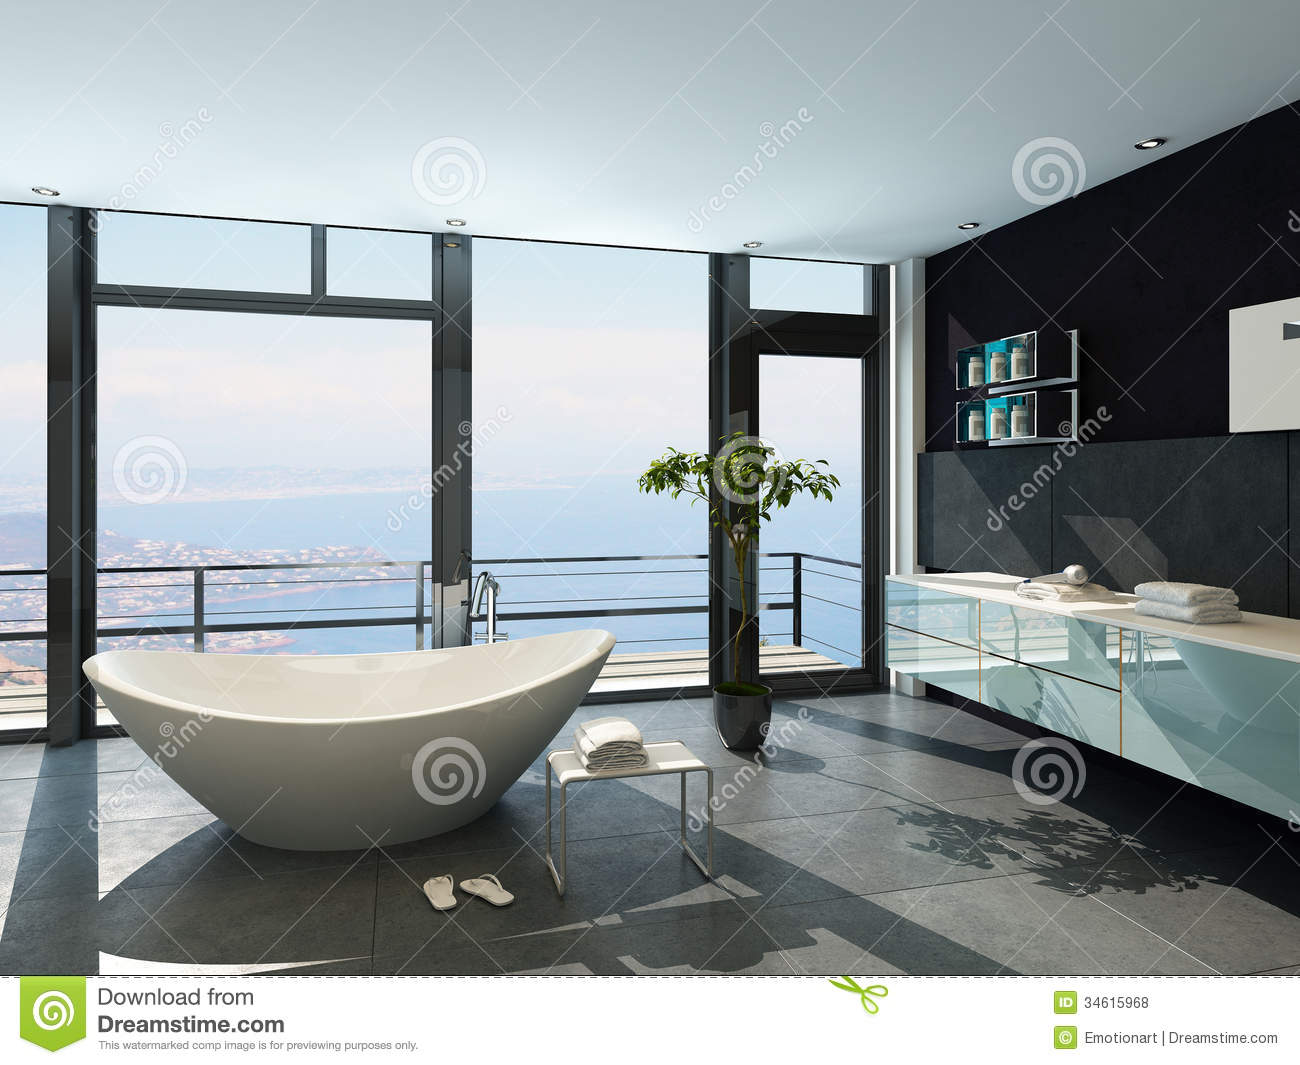 Image Result For Bathroom Interior Design